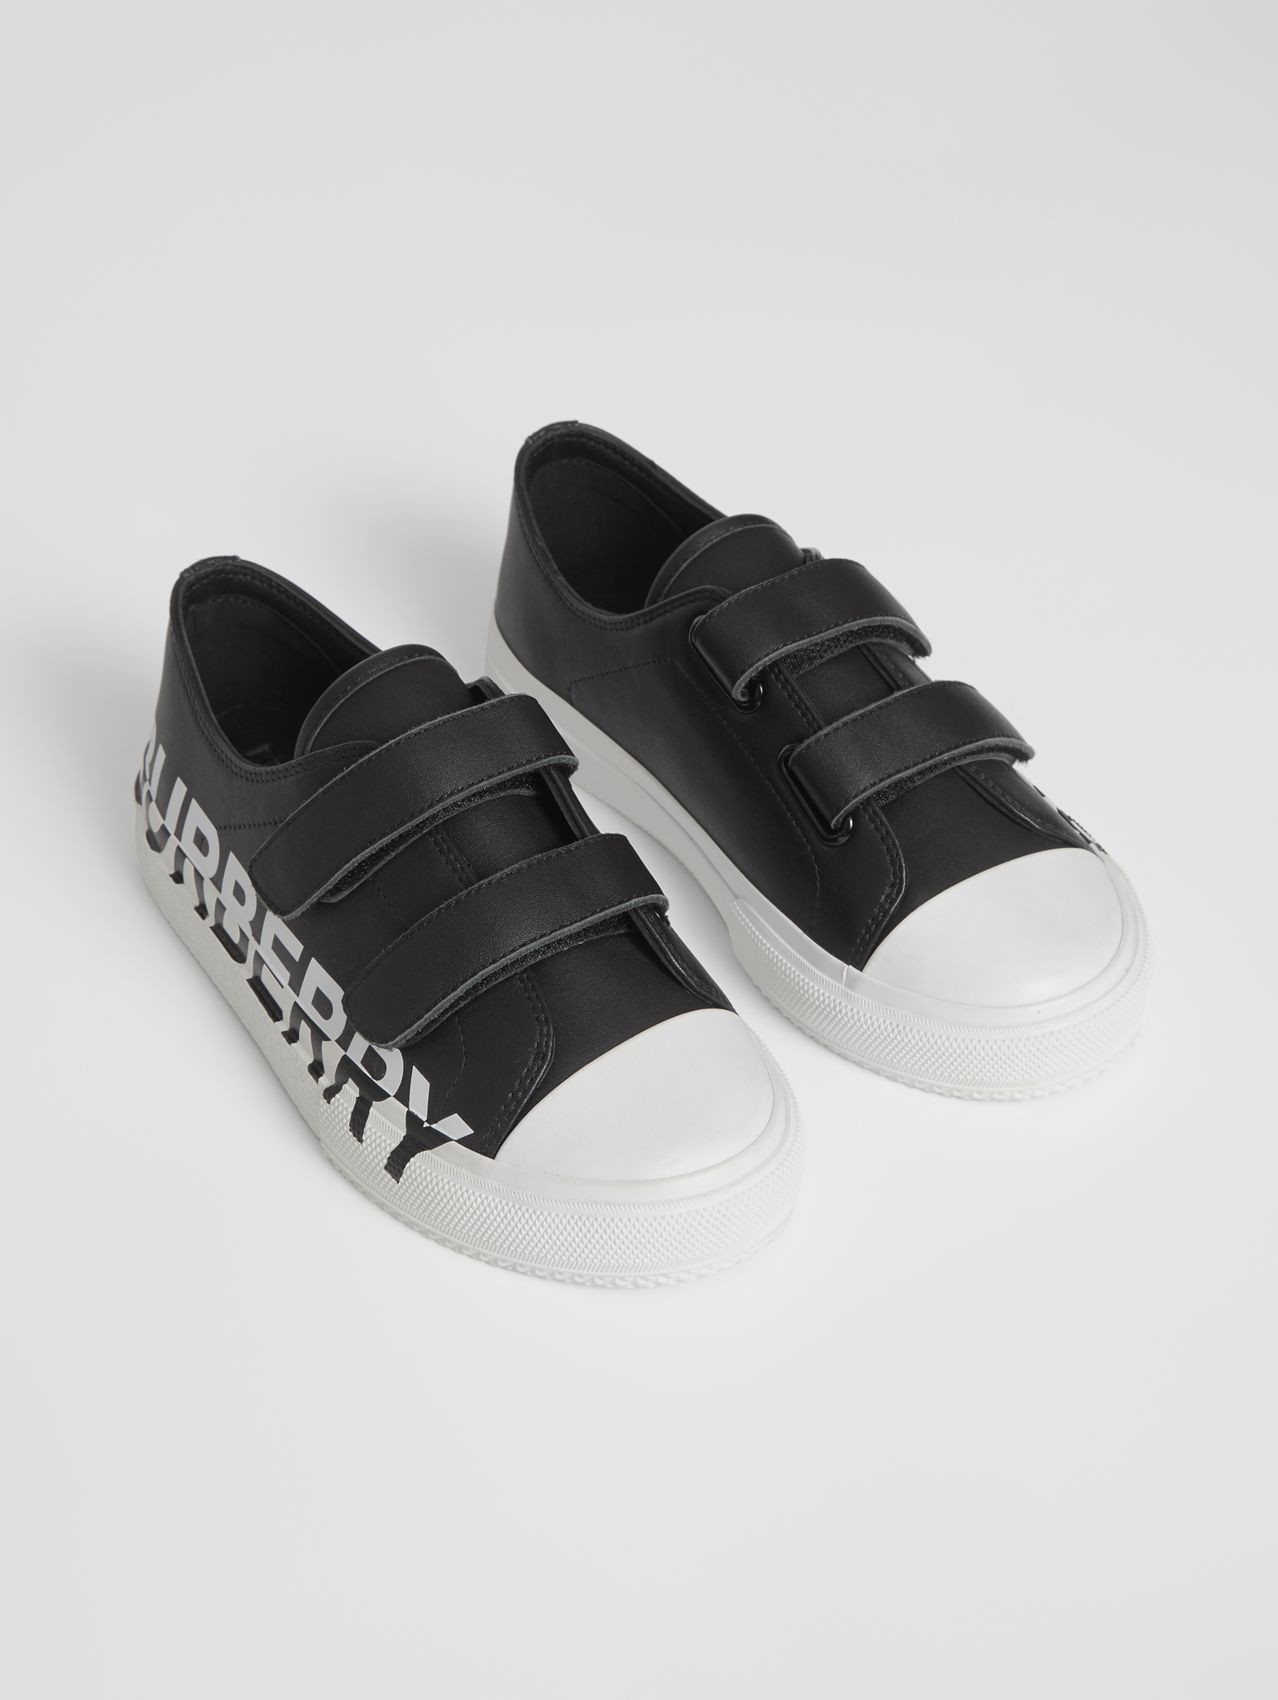 Logo Print Two-tone Leather Sneakers in Black/white